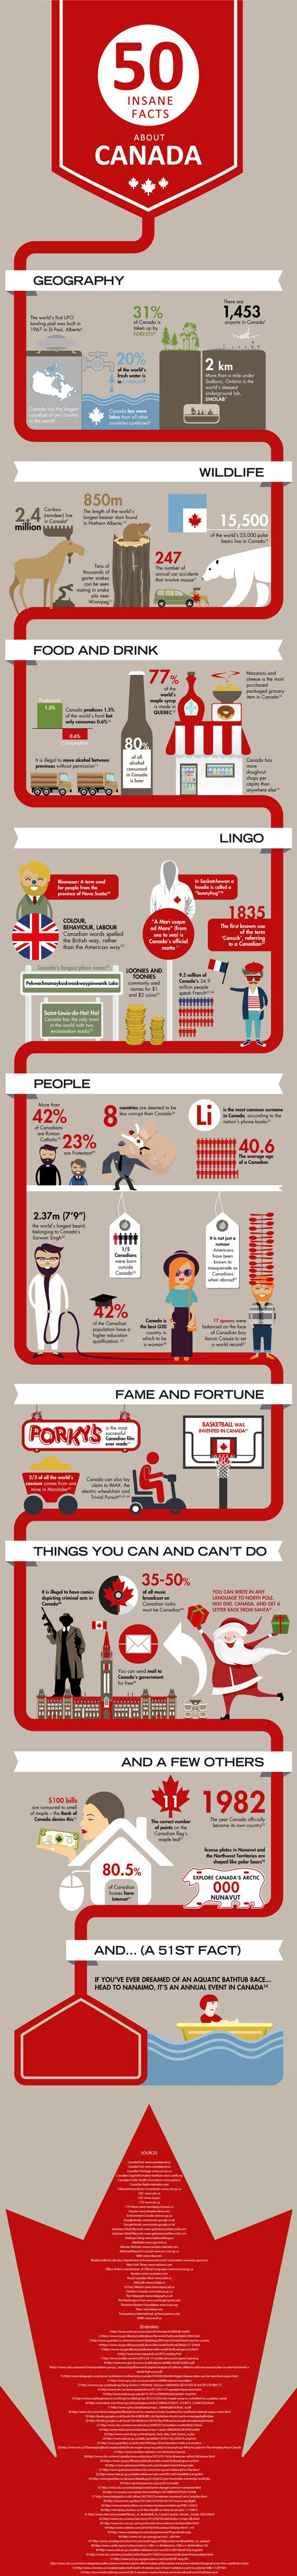 50 Facts about Canada. Quite interesting actually. I didn't even know about some of these!